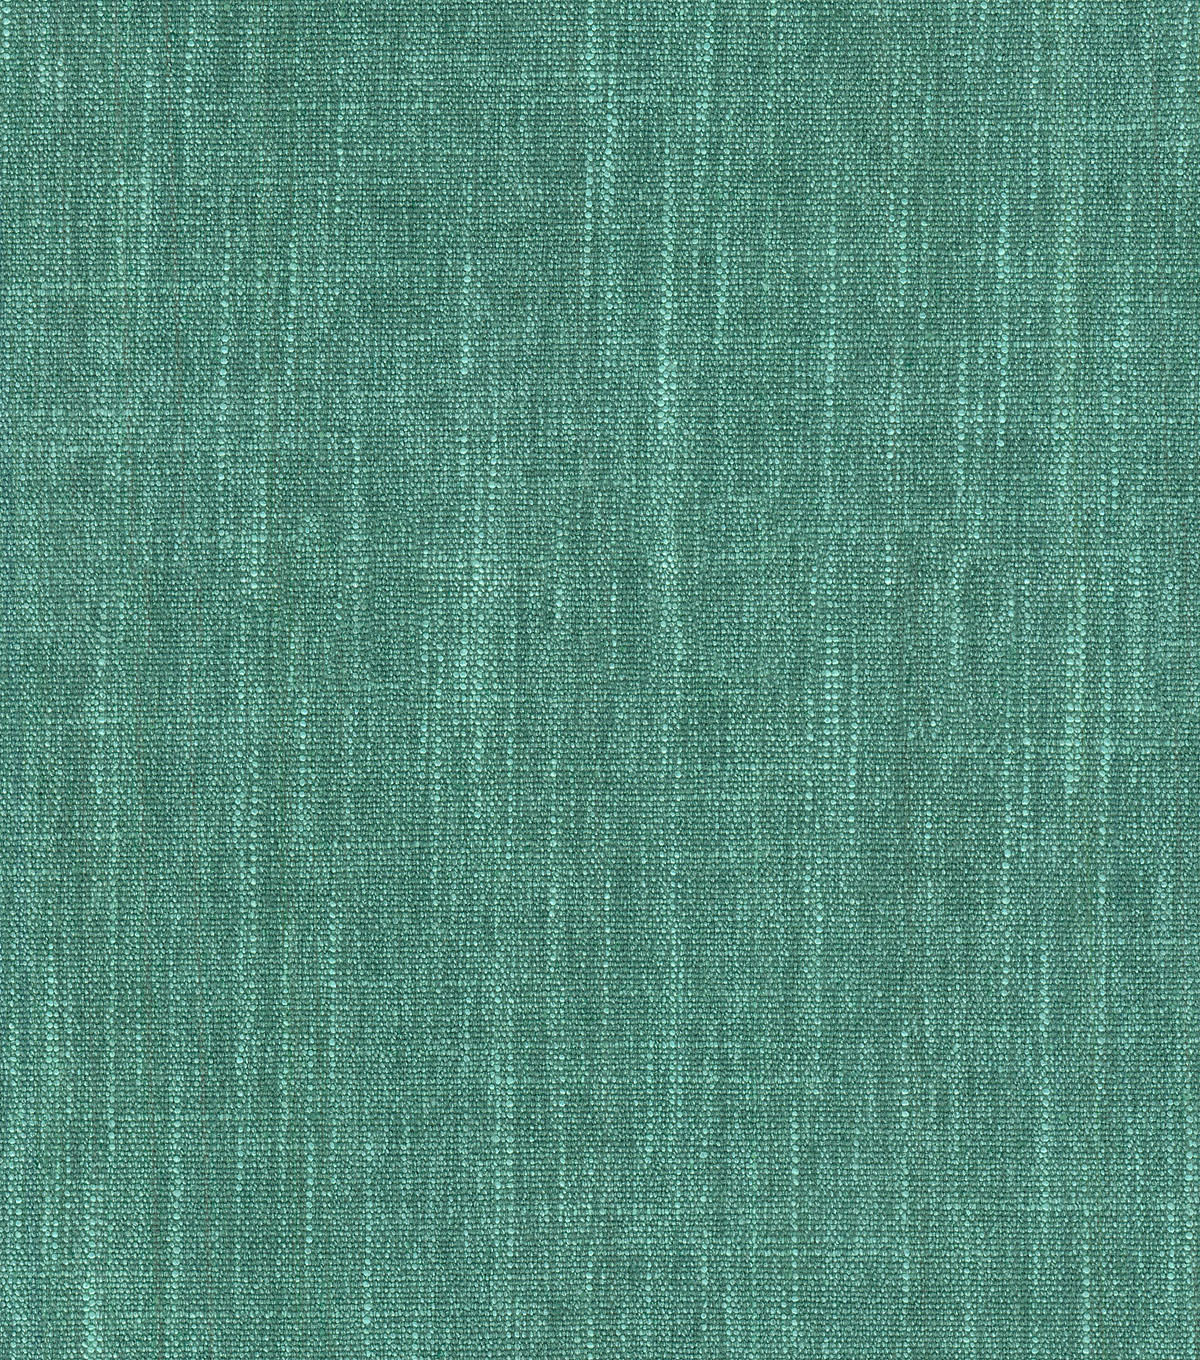 Waverly Lightweight Decor Fabric 57\u0022-Orissa/Teal